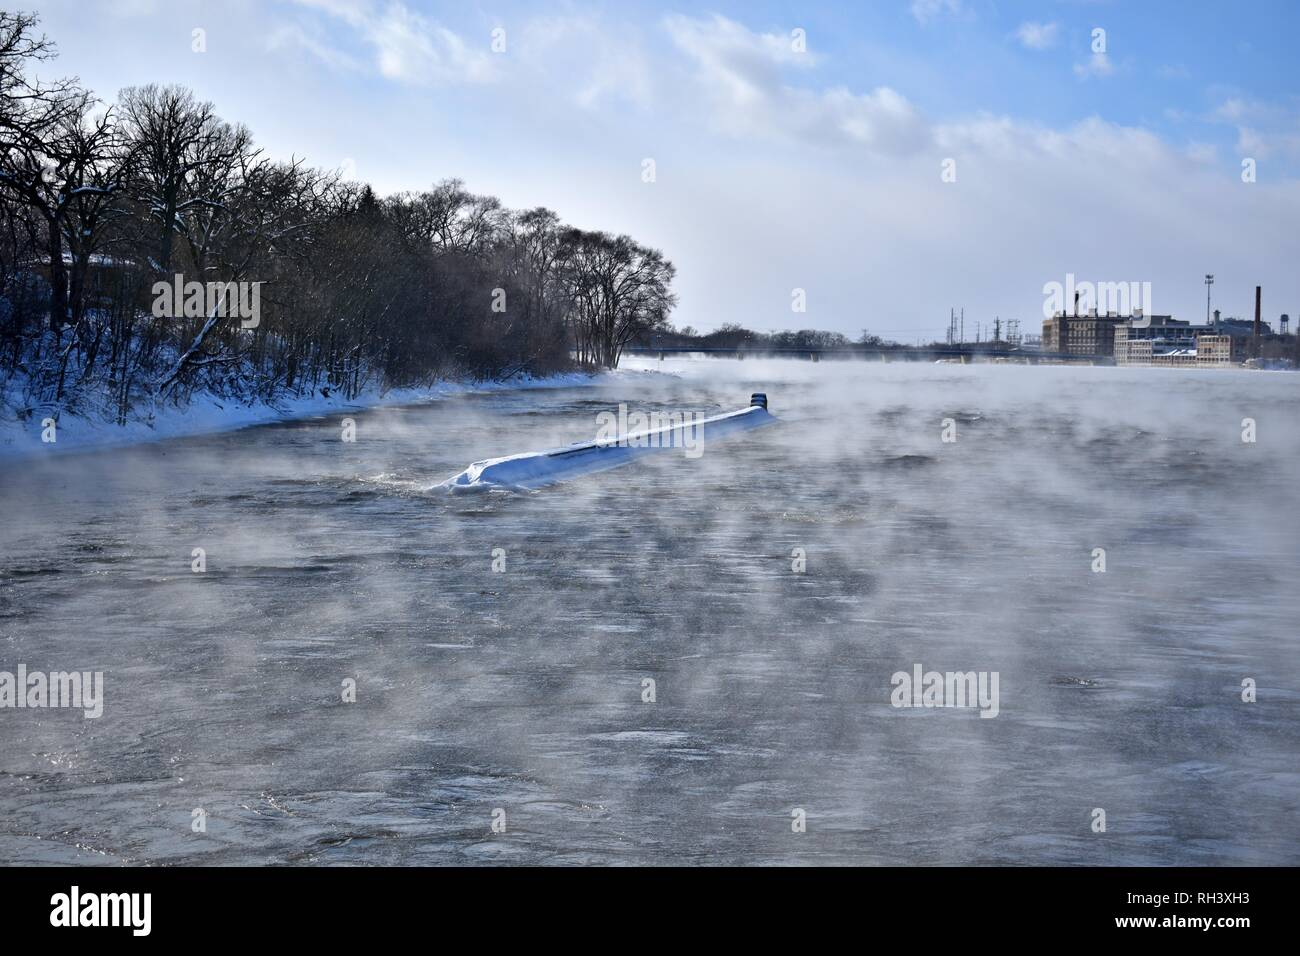 water vapor fog coming of the river on a cold day - Stock Image